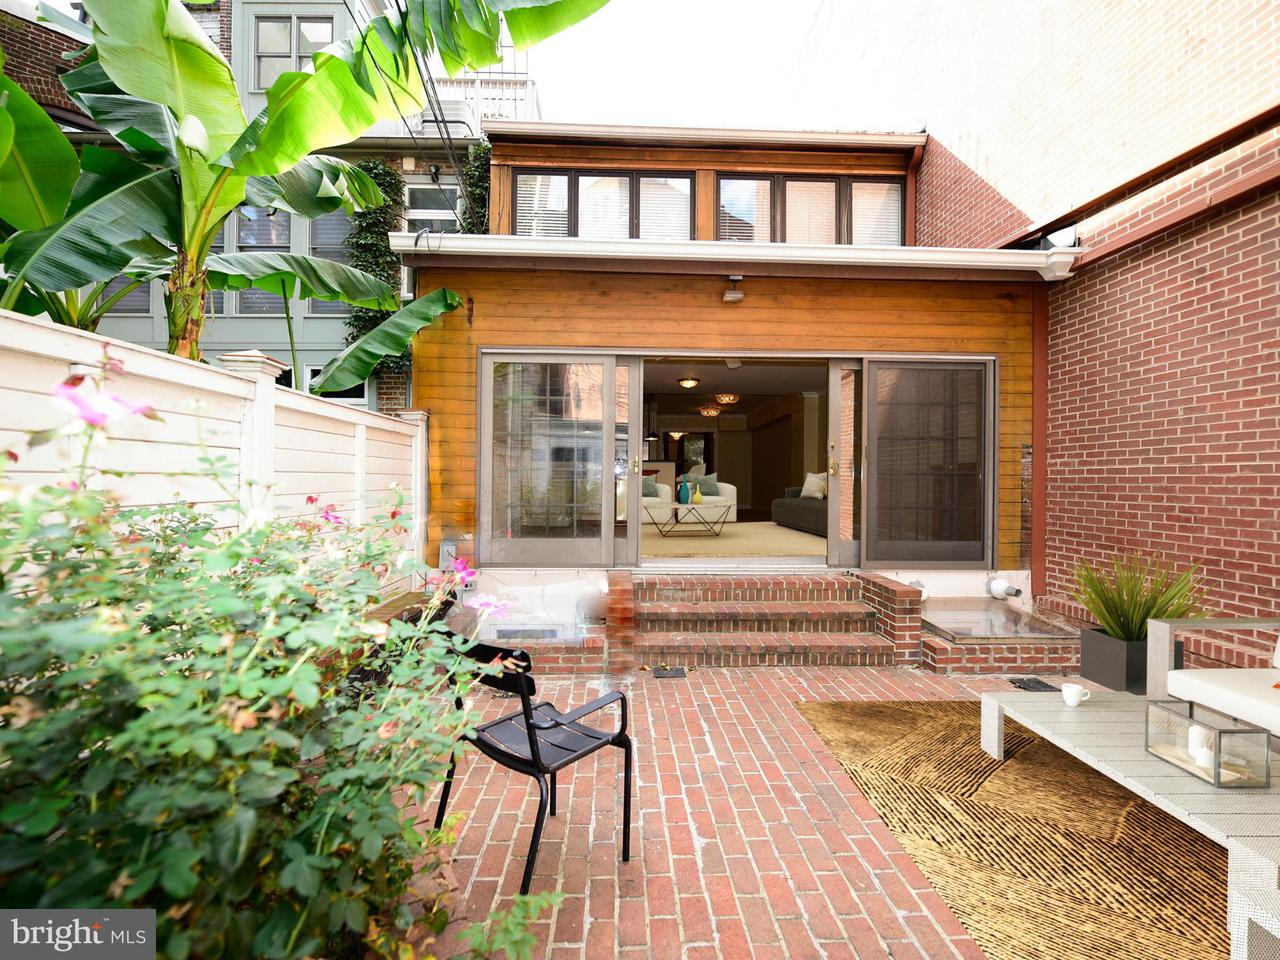 Additional photo for property listing at 1319 21ST ST NW 1319 21ST ST NW Washington, 컬럼비아주 20036 미국